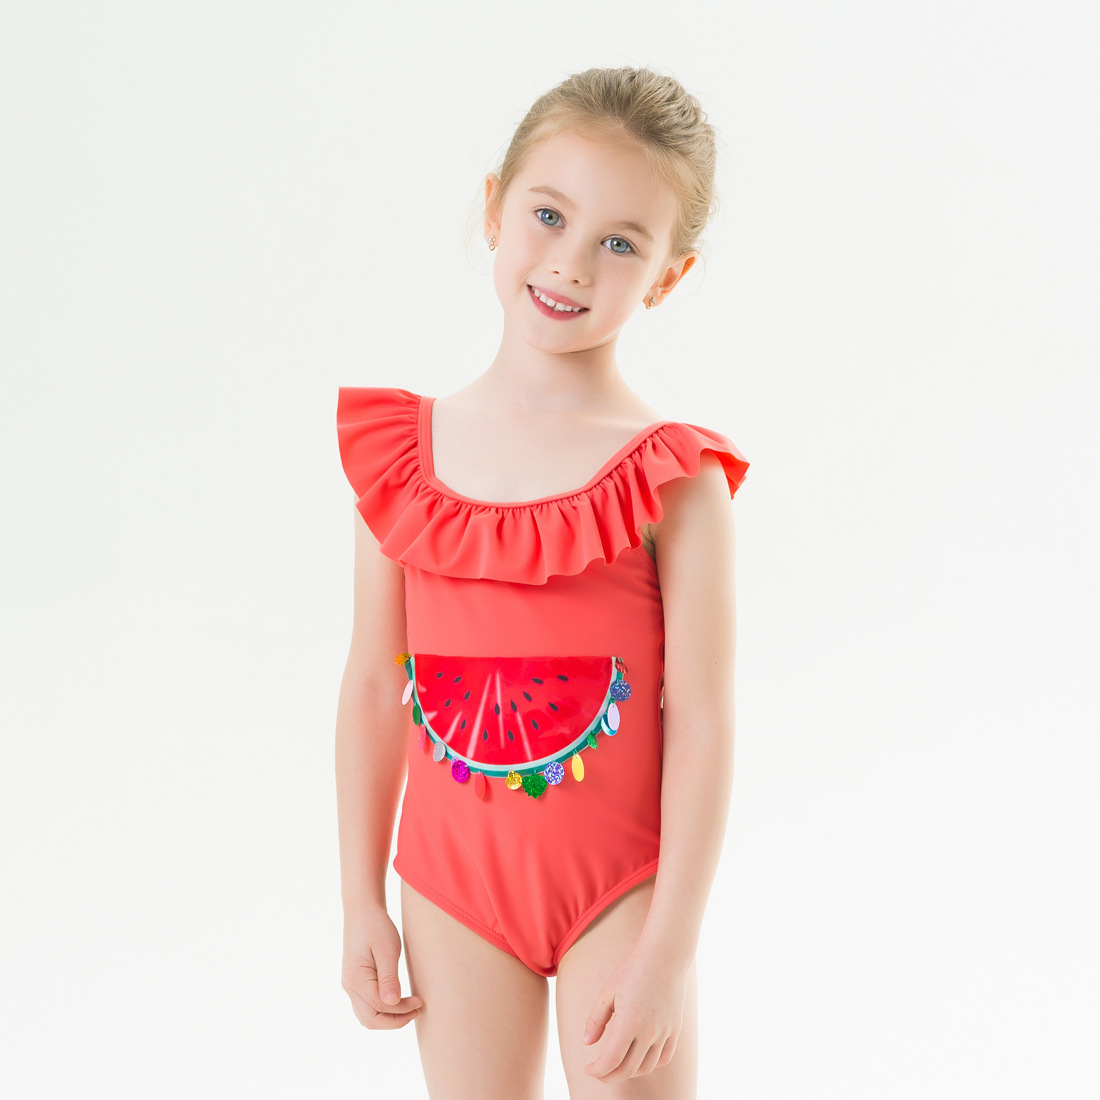 Toddle Kids Girls Print Watermelon Sequins Ruffles Swimsuit Swimwear